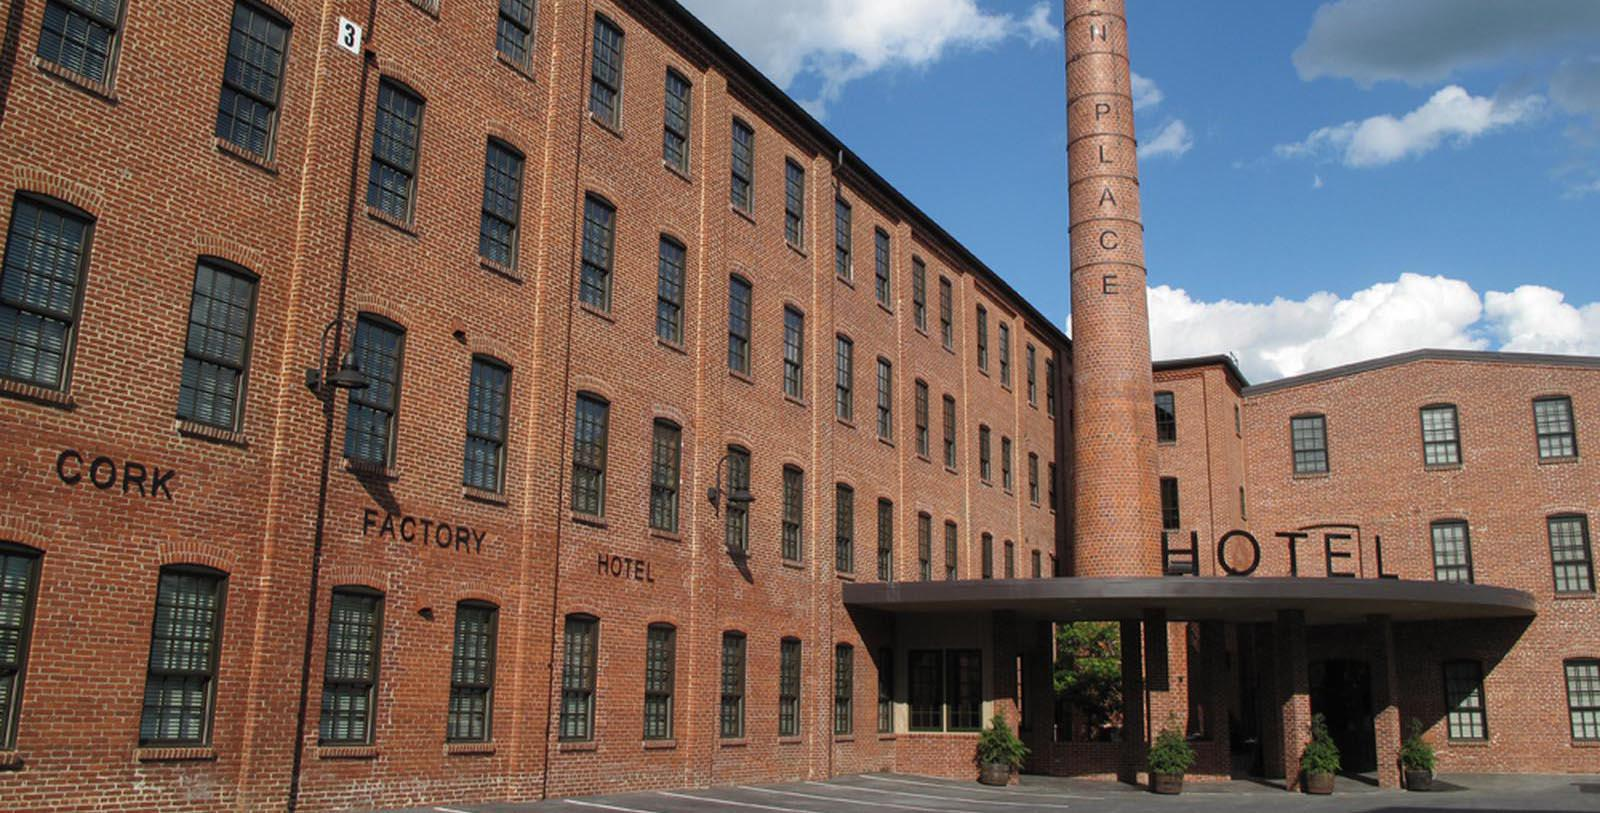 Image of Hotel Exterior at Cork Factory Hotel, 1865, Member of Historic Hotels of America, in Lancaster, Pennsylvania, Overview